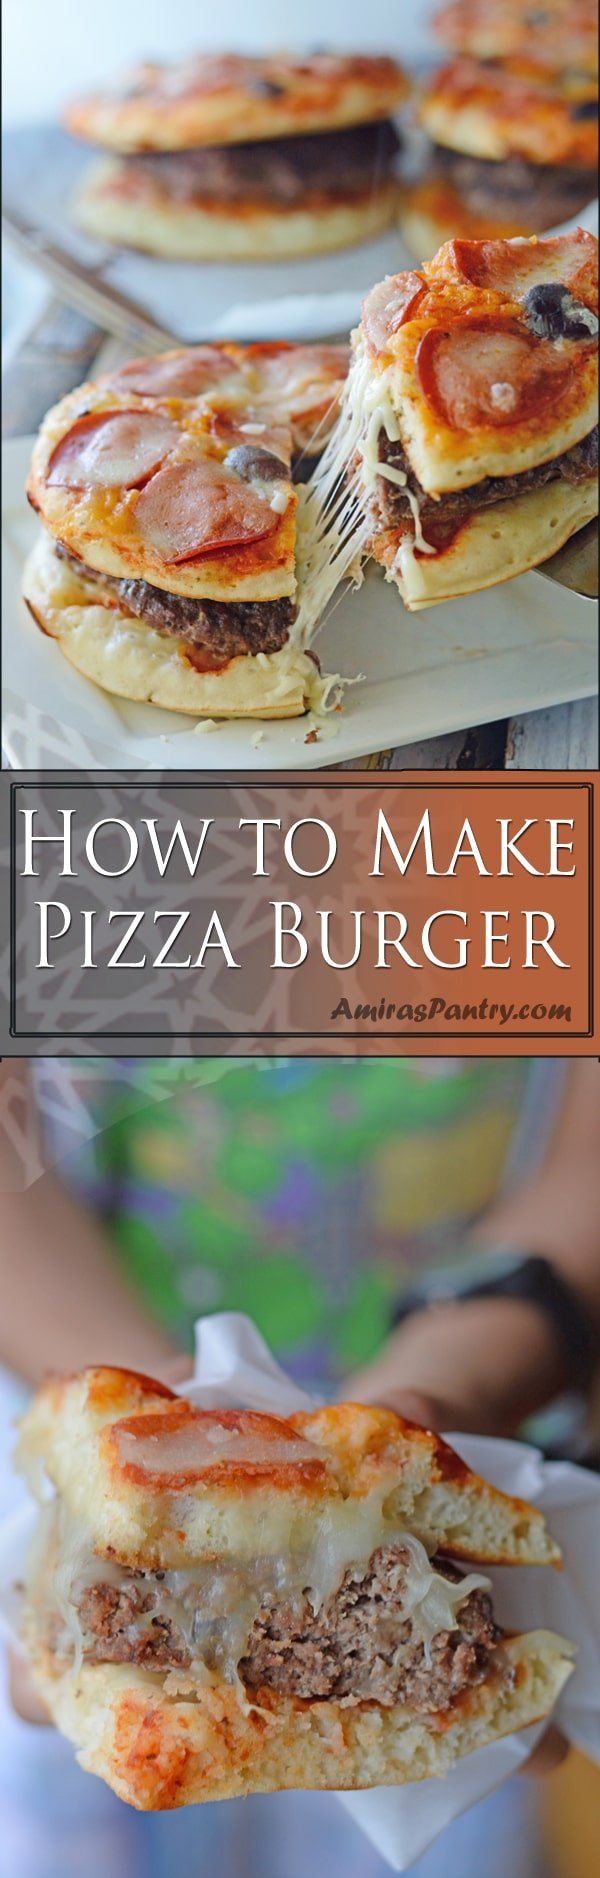 Homemade pizza burgers are burgers sandwiched between two pizzas, how terrifying crazy idea does this sound?! Whether you are a pizza fan or a burger fan, you'll definitely find something to eat.